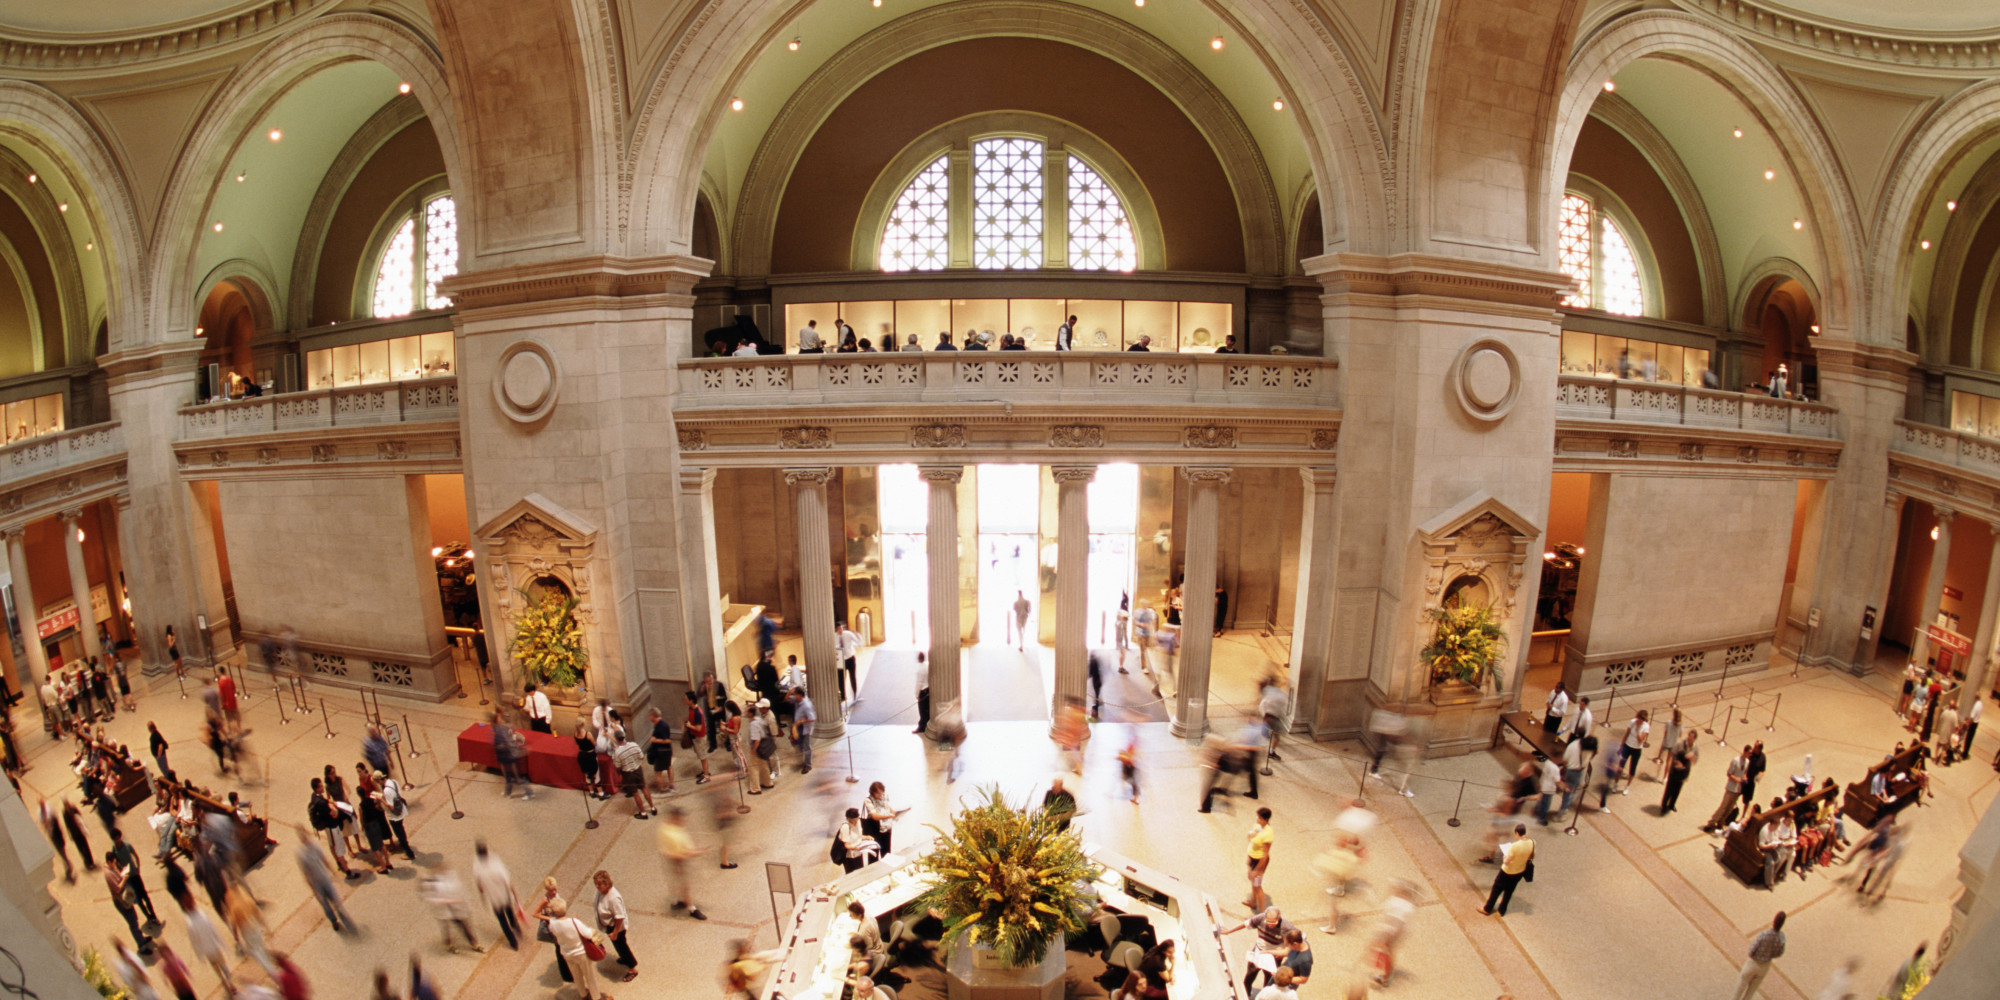 Metropolitan Museum Of Art Stock Photos Metropolitan: Groupon Wants To Charge You $18 To Visit The Met, Which Is